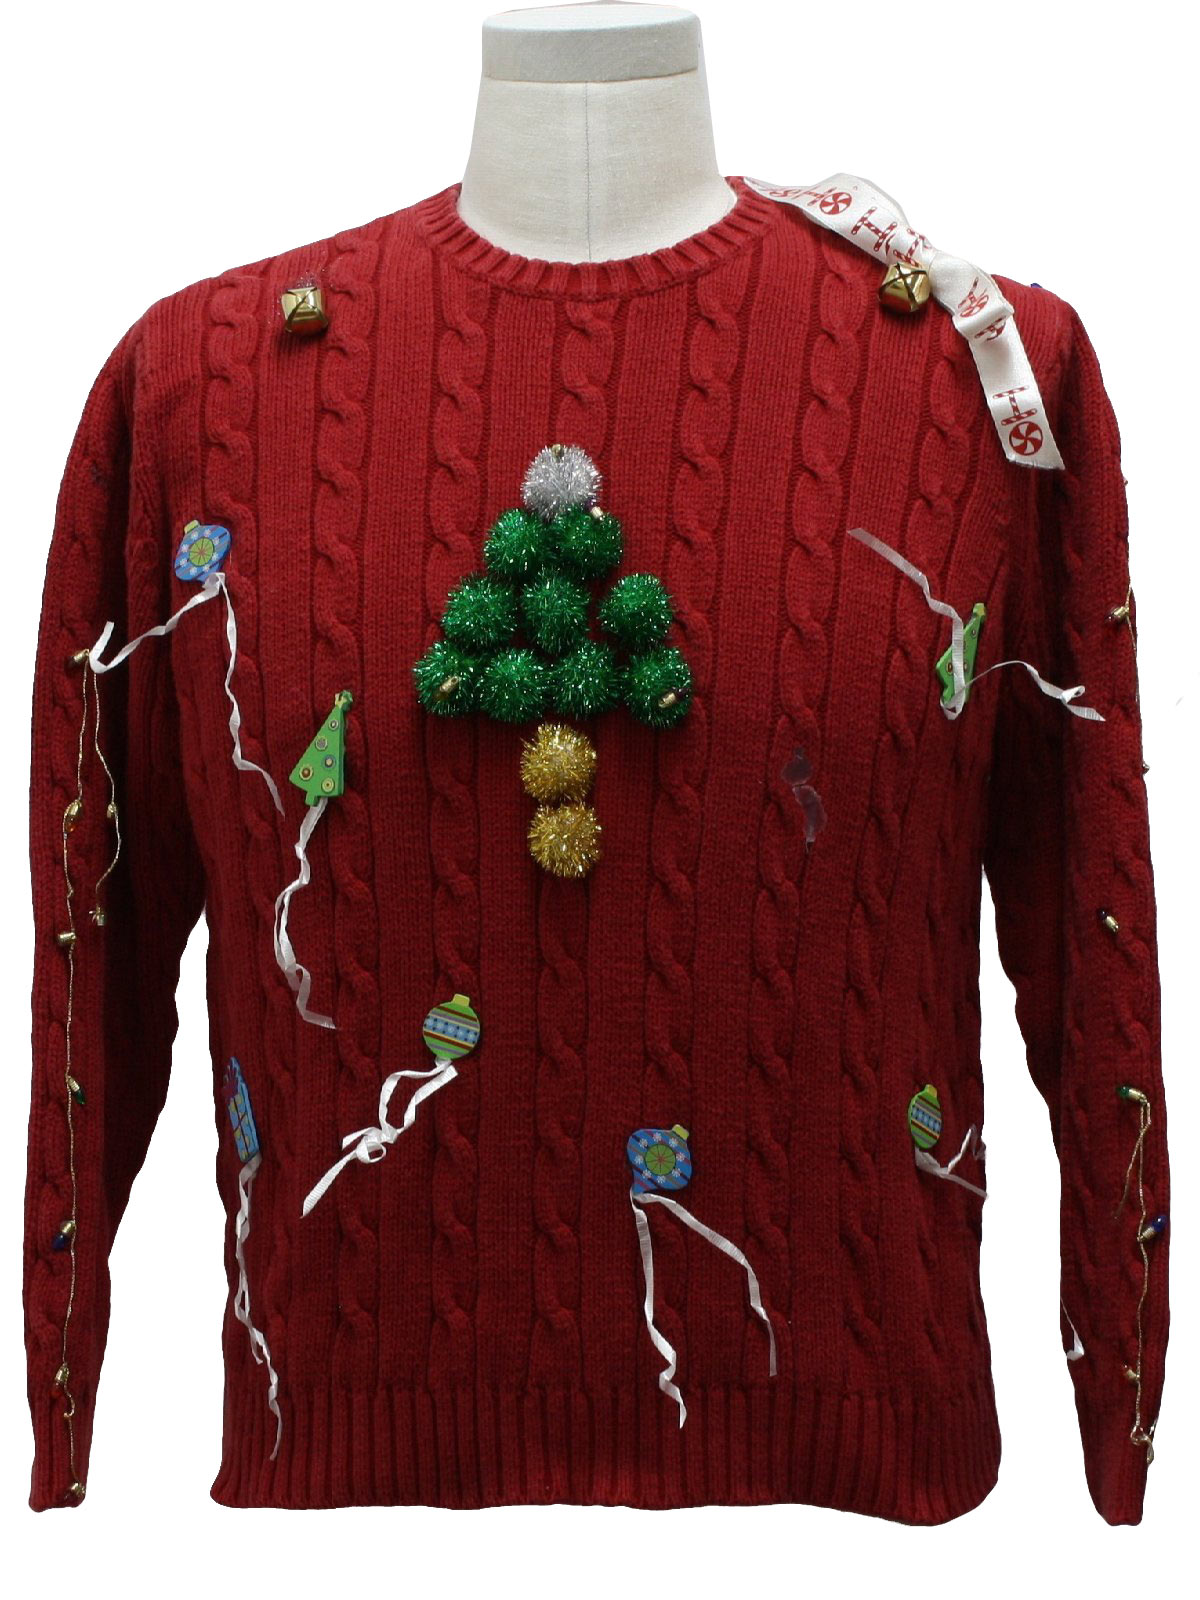 St. Johns Bay Unisex My-3-Year-Old-Could-Make-That Hand Decorated Amature Ugly Christmas Sweater $25.00 Not in stock. Item No. 229329